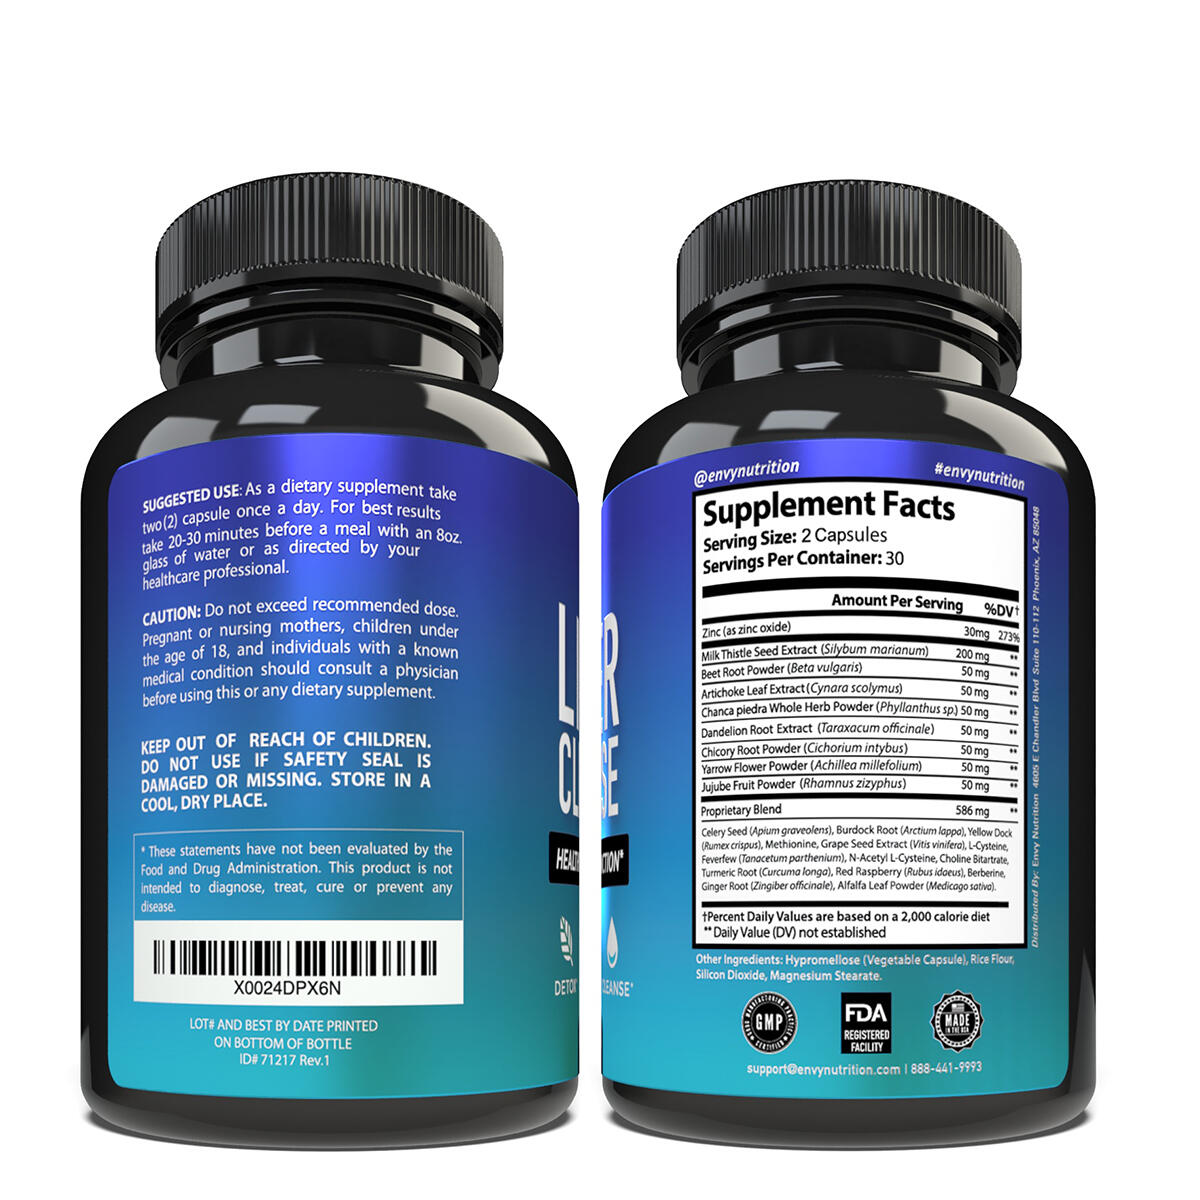 Liver Cleanse - Healthy Liver Function & Detox Supplement - Milk Thistle, Silymarin, Beet, Artichoke, Dandelion, and Chicory for Enhanced Liver Support - 60 Capsules